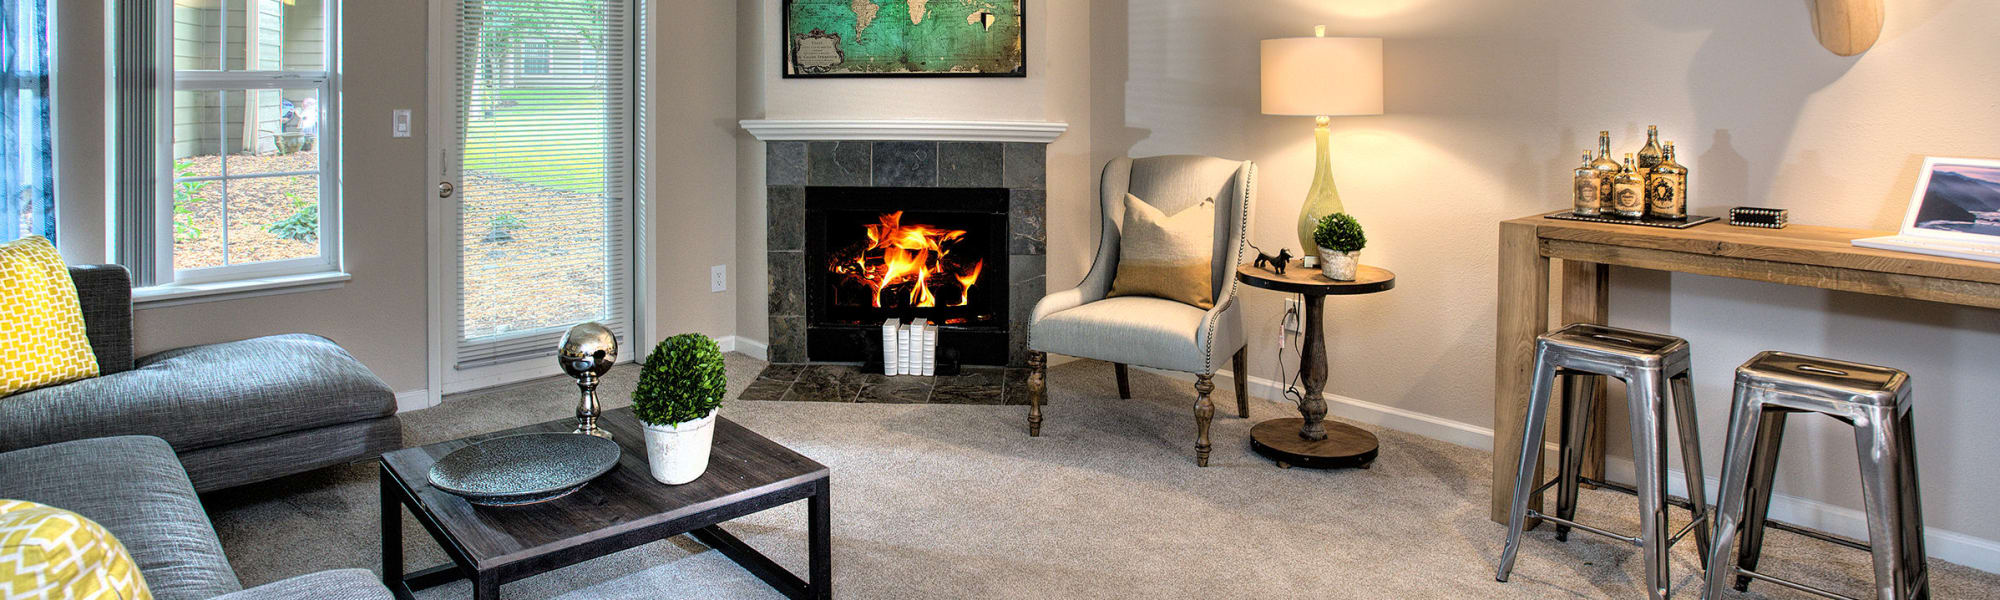 Floor plans at Slate Ridge at Fisher's Landing Apartment Homes in Vancouver, Washington